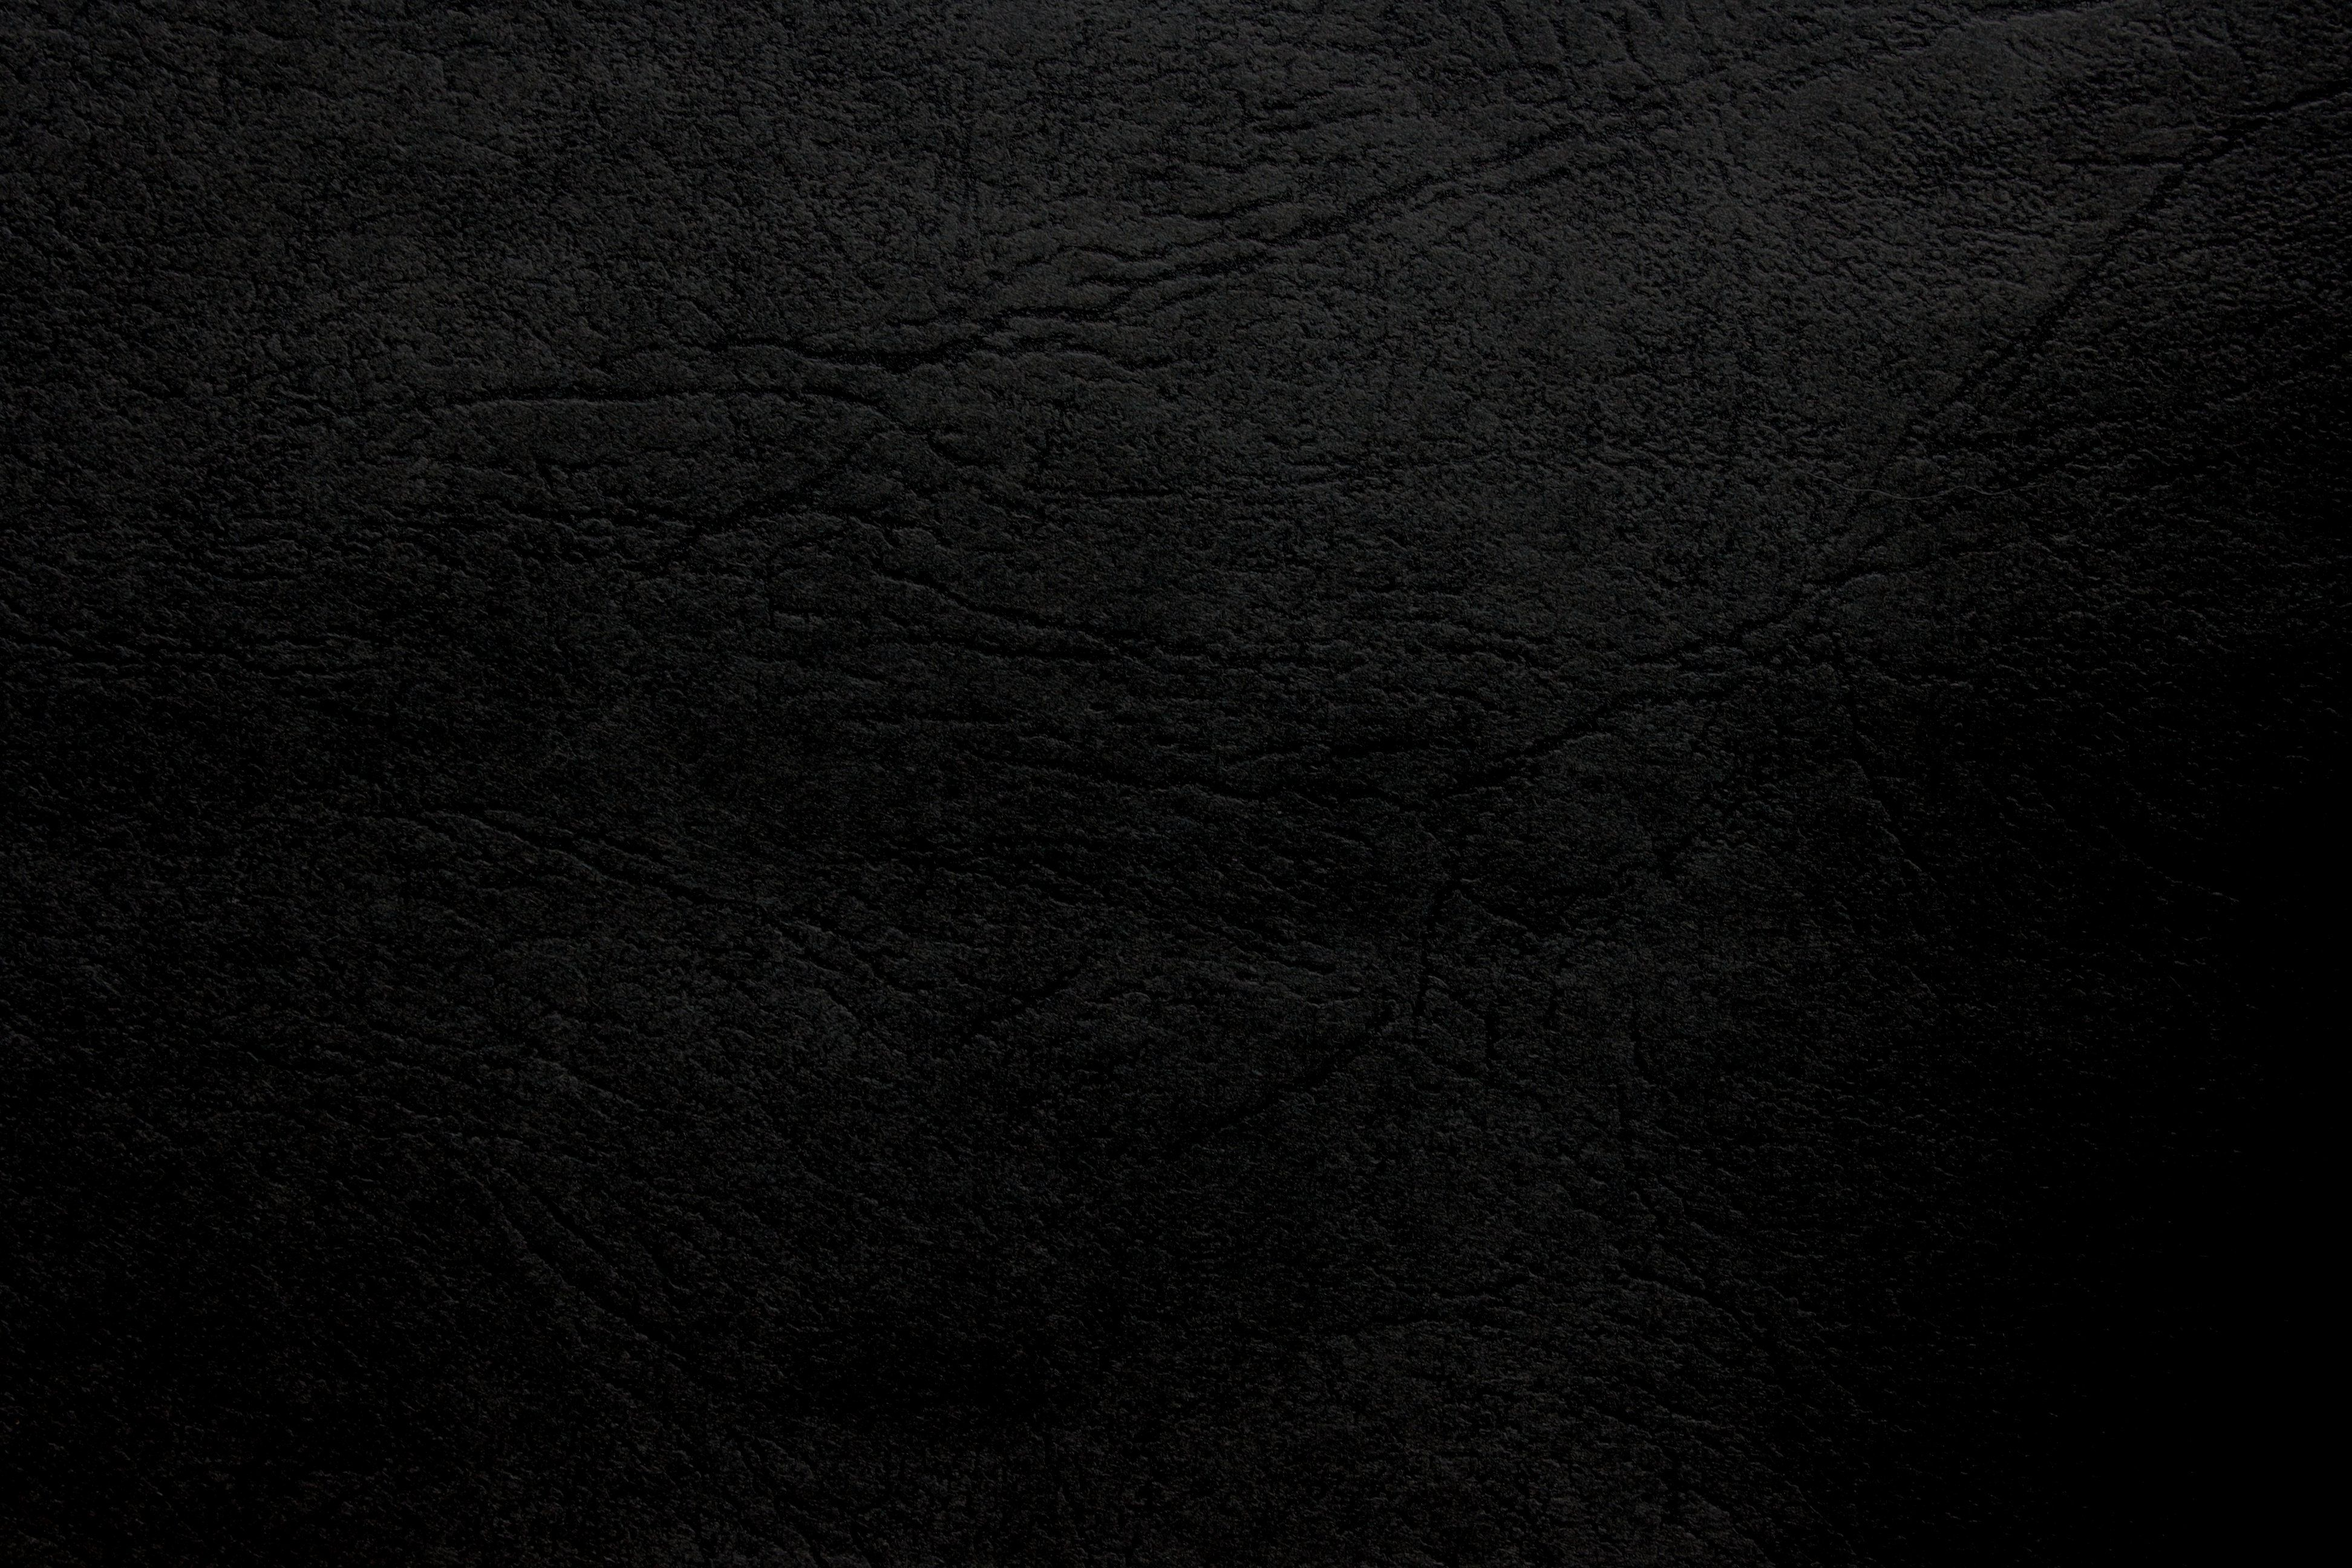 Black Leather Black Leather Texture Free High Resolution Photo Dimensions 3888 Leather Texture Black Textured Wallpaper Free Photographs